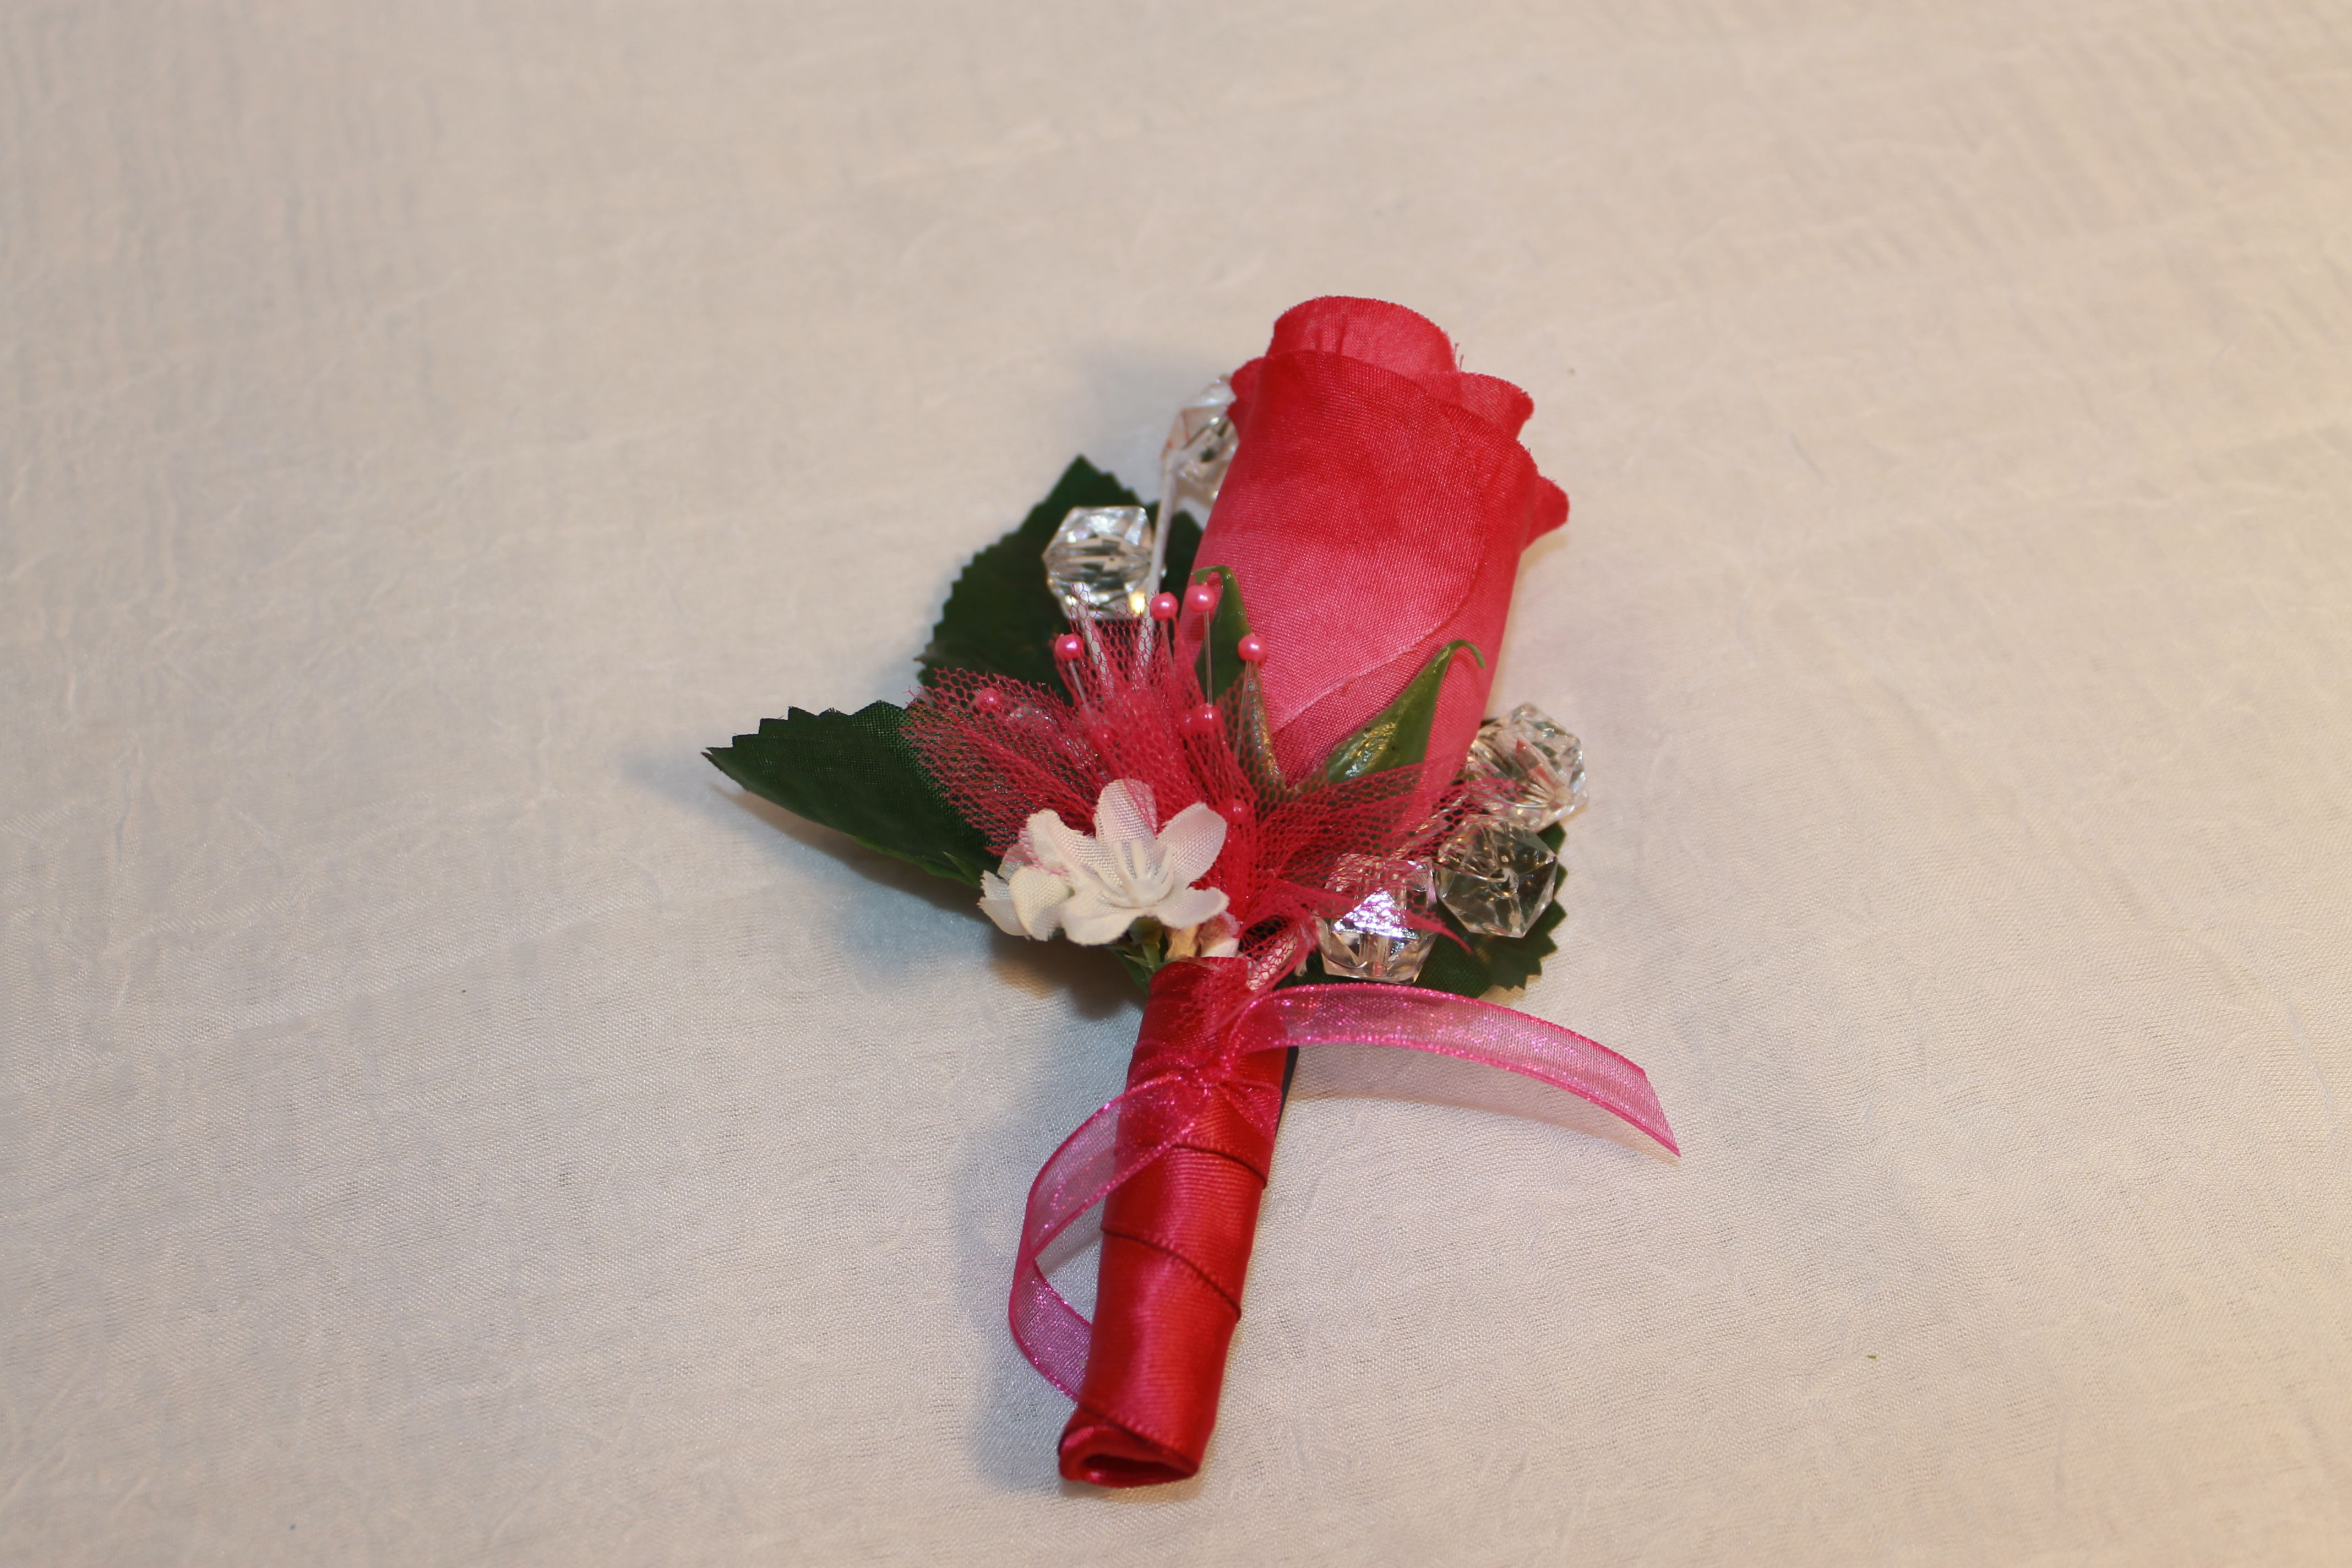 Pink Silk Corsage For Prommothers Dayanniversarywedding